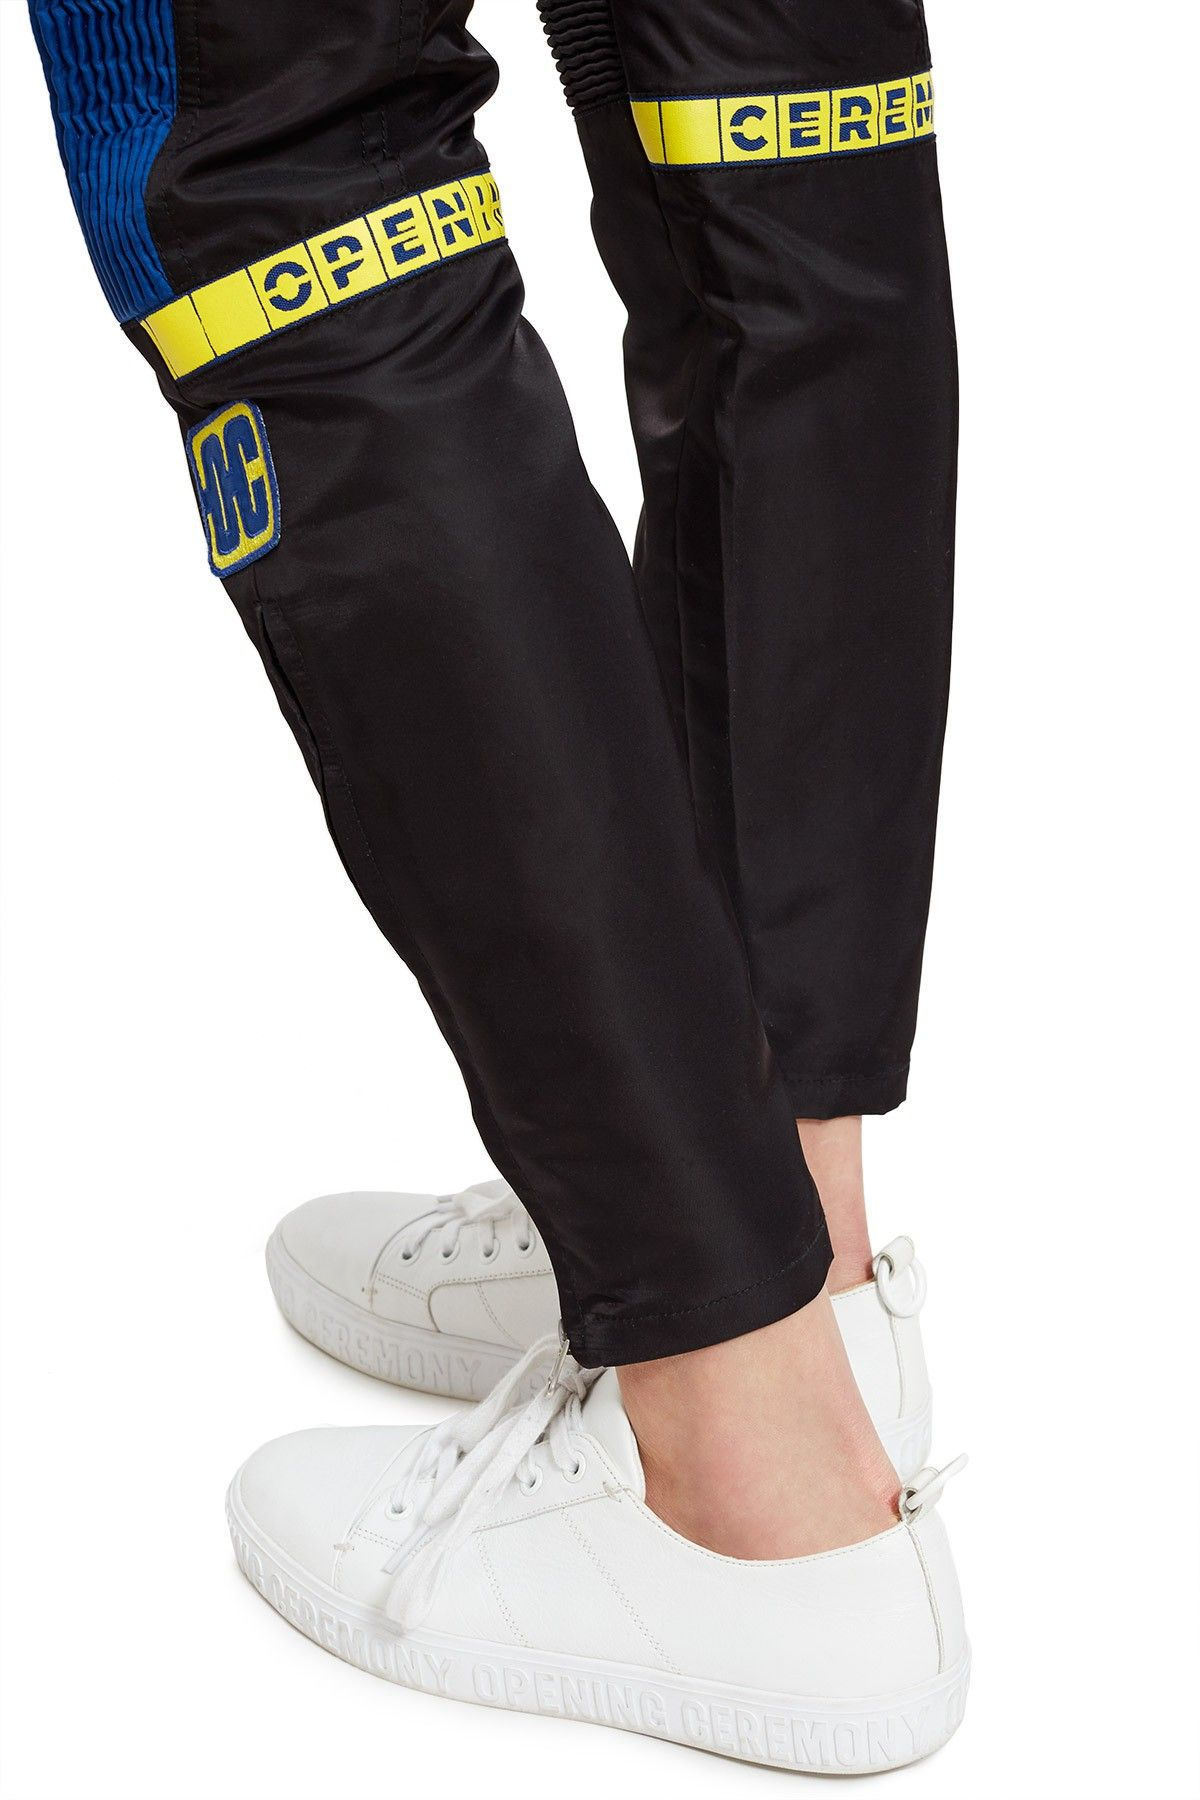 Opening Ceremony Moto Pant With Striking Logo Graphics And Bold Color Blocking Torch S Spring Summer 2018 Takes Insp Moto Pants Mens Outfits Opening Ceremony